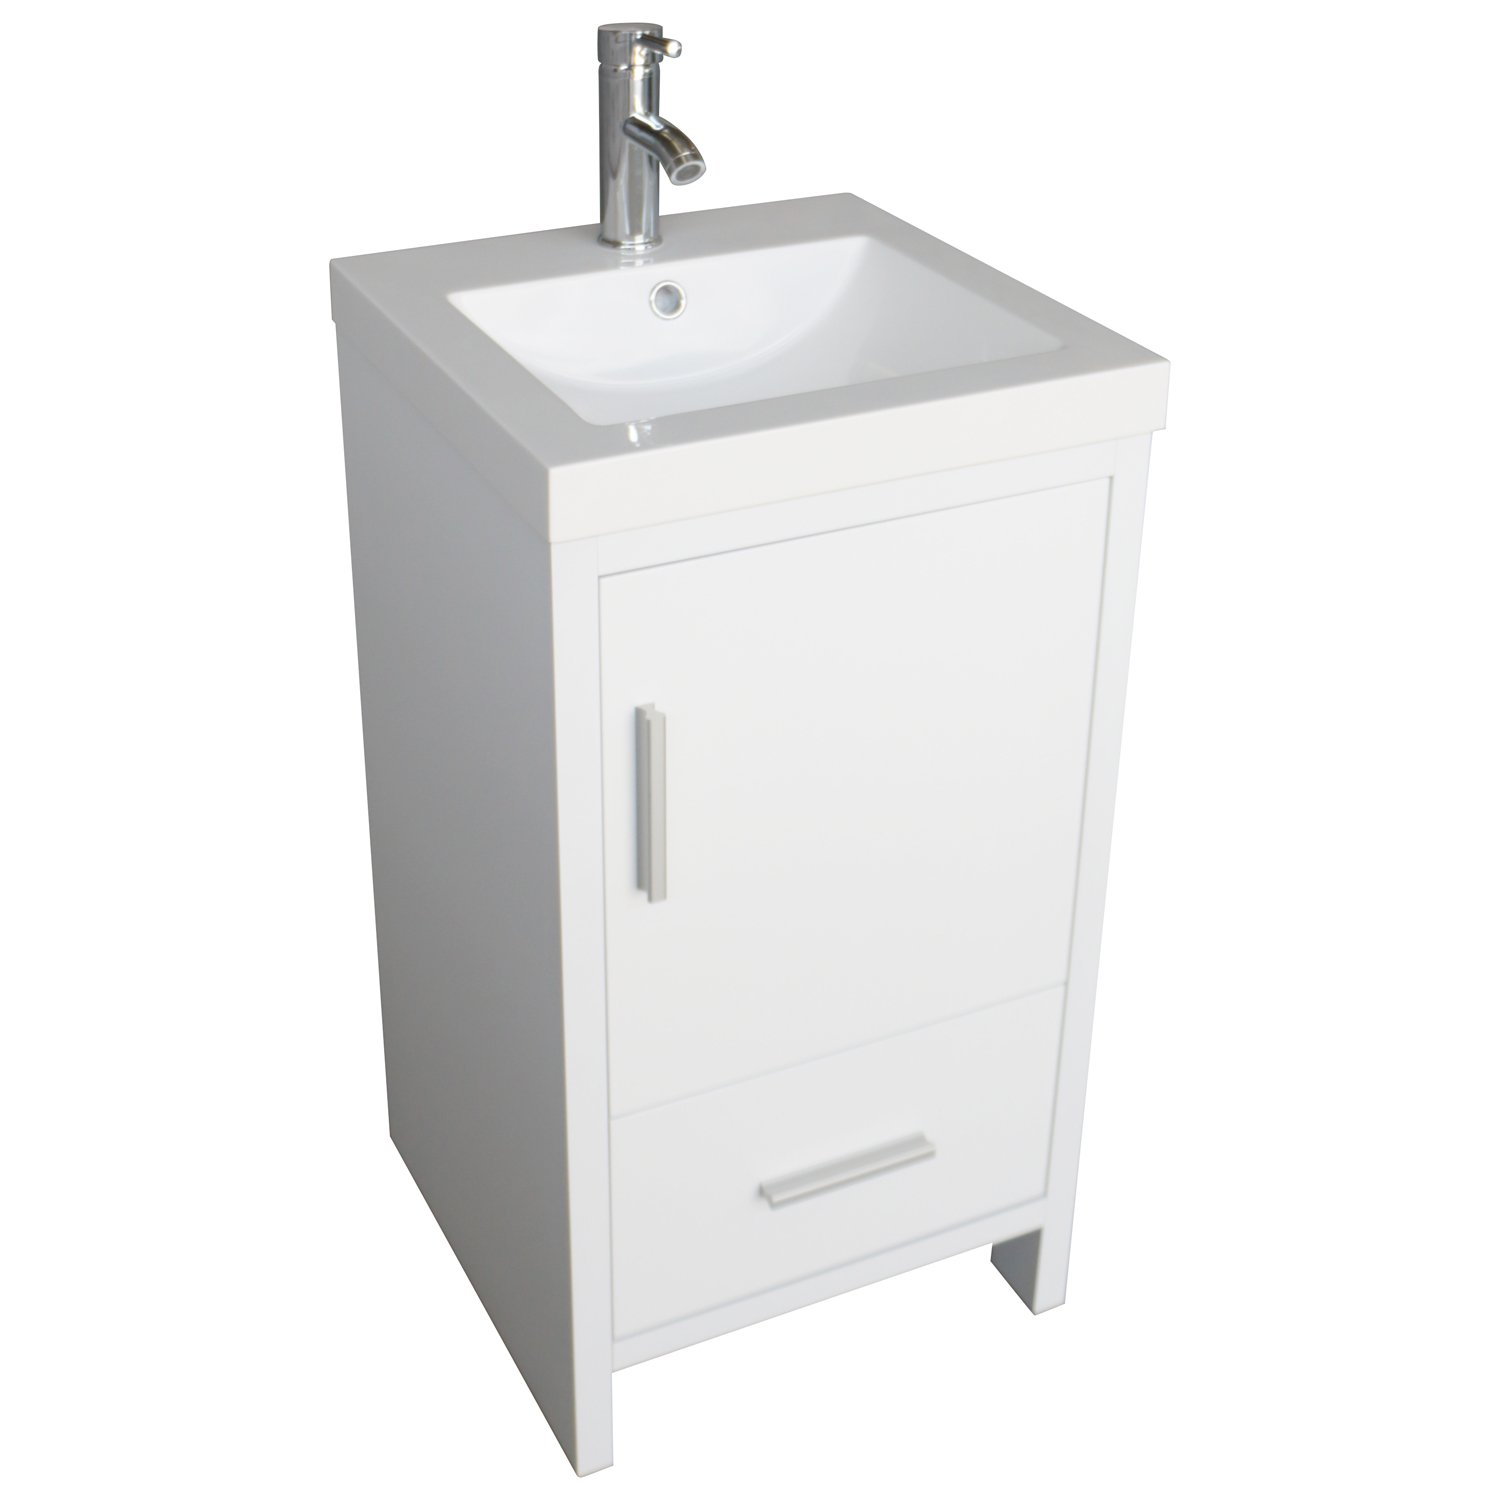 Walcut 18 White Bathroom Vanity Mdf Wood Cabinet Resin Counter Top Vessel Sink Set With Faucet And Pop Up Drain